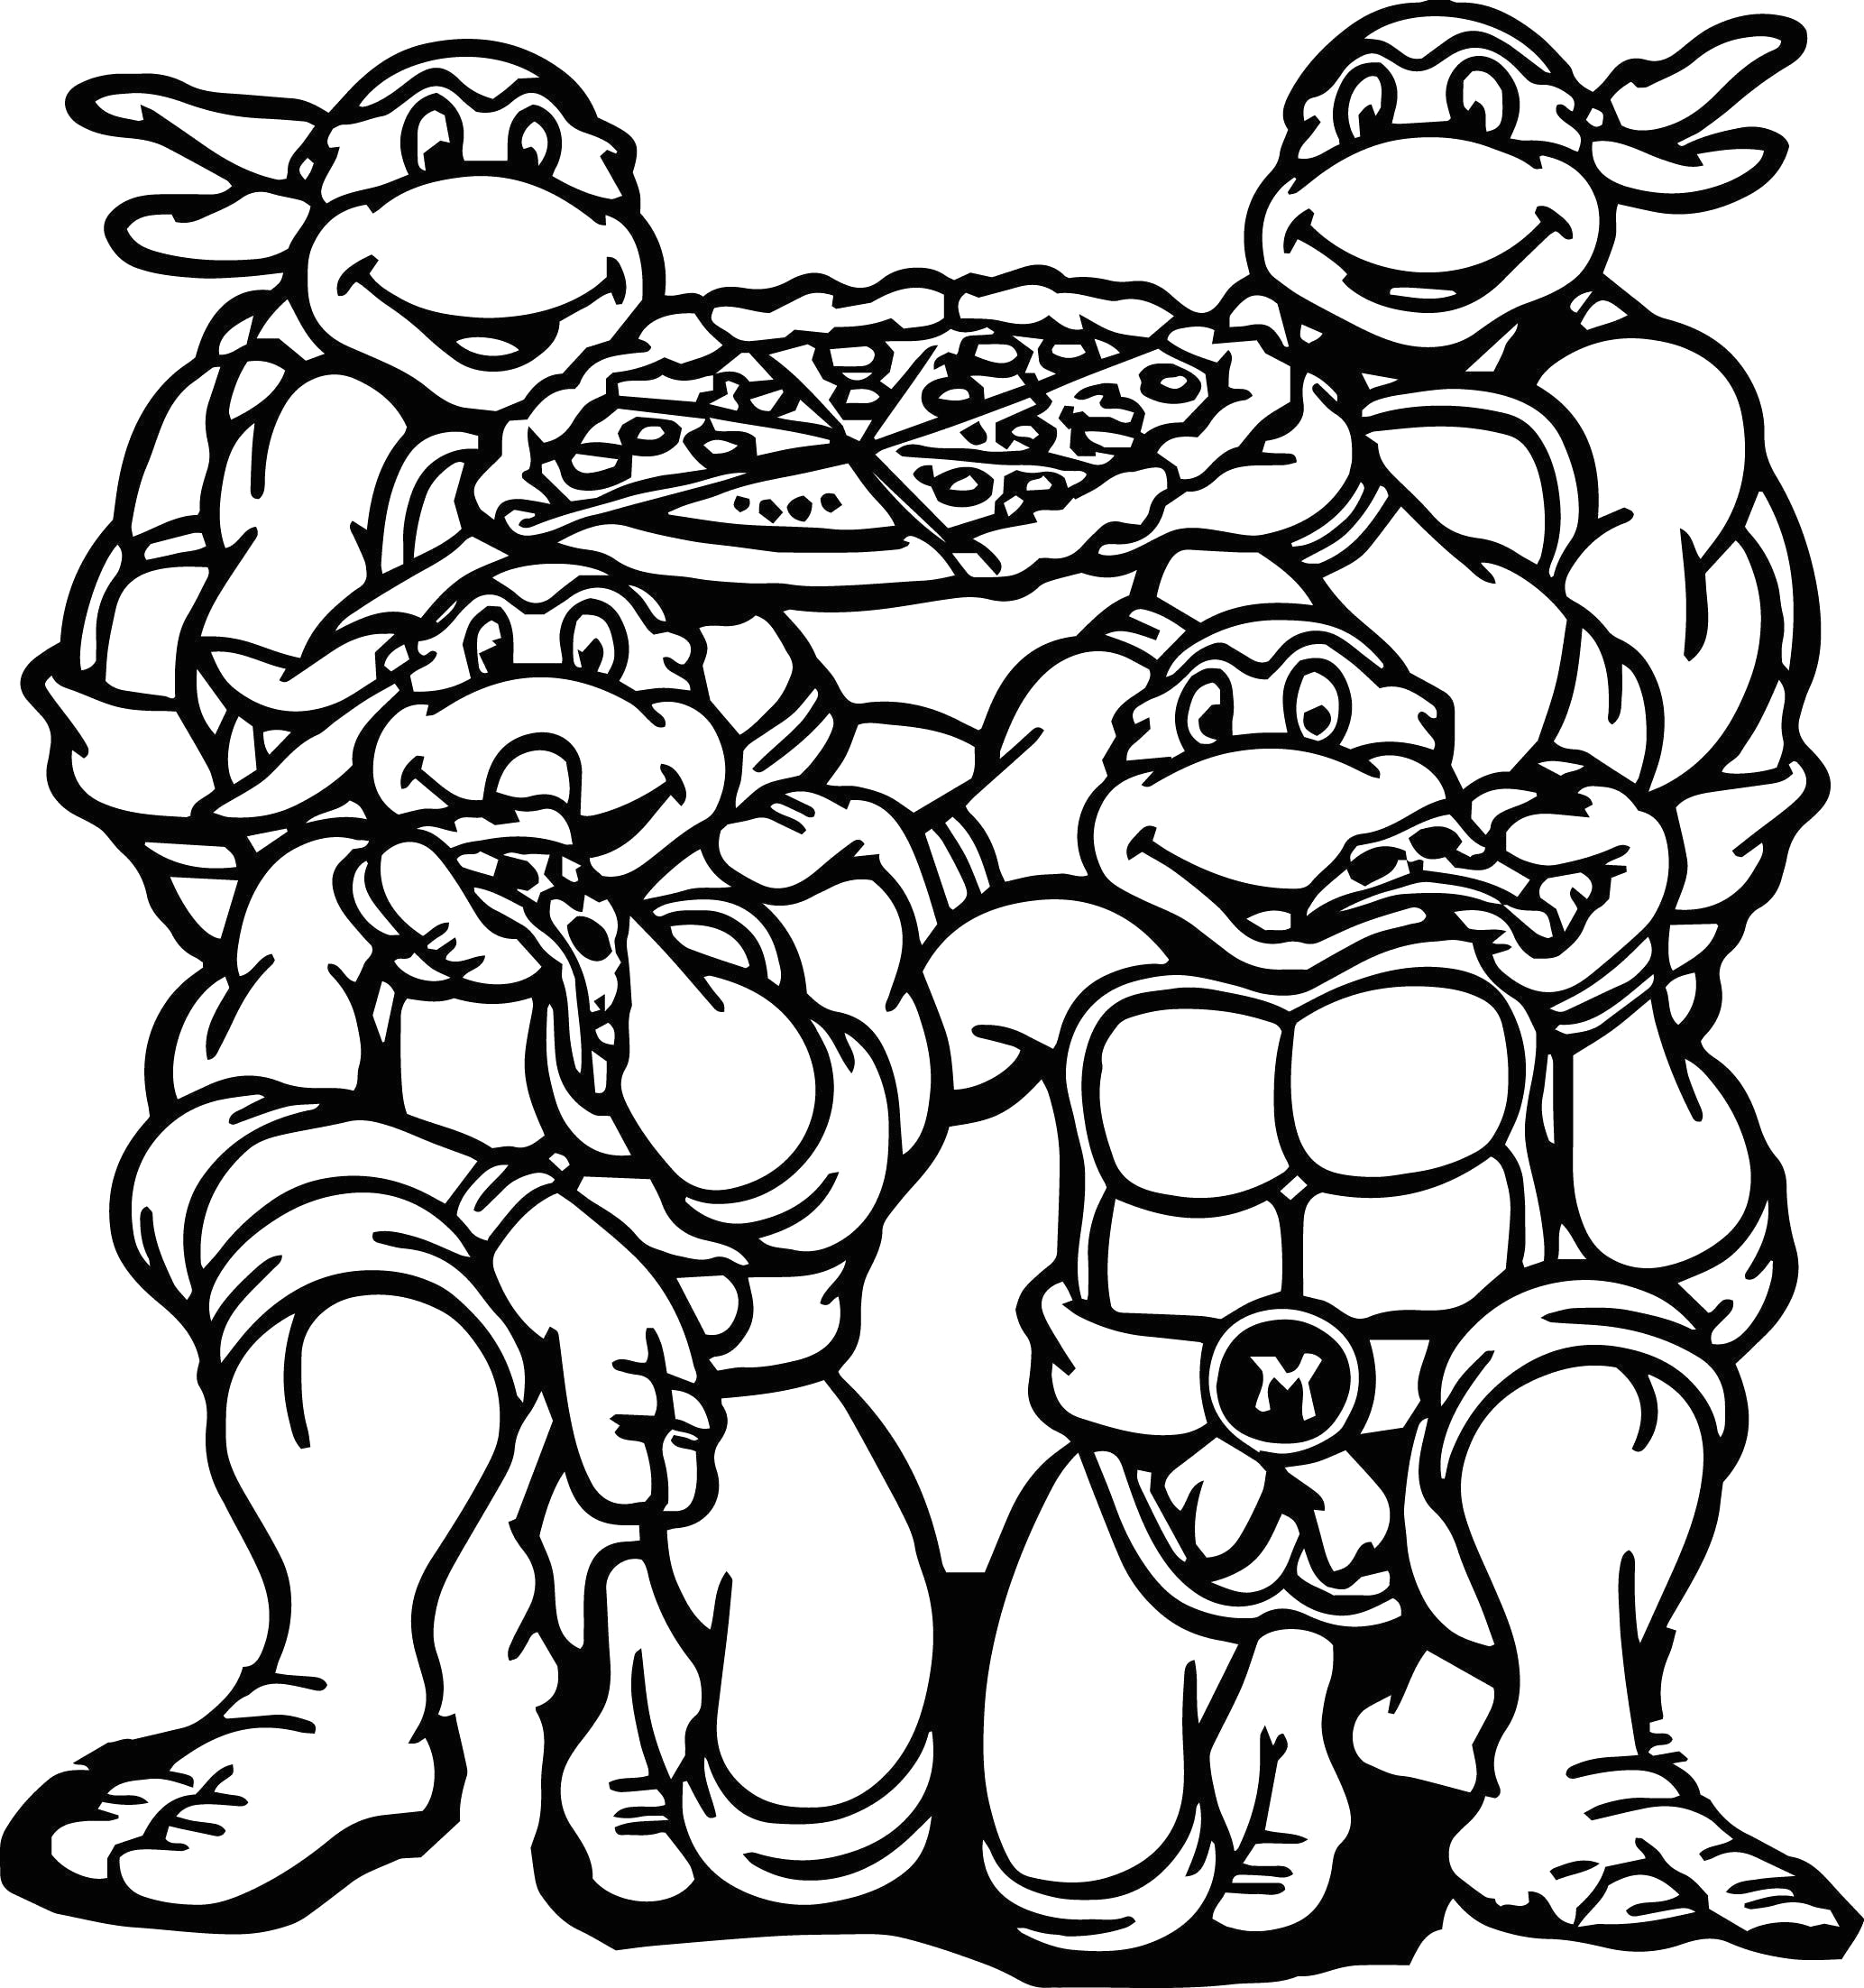 Coloring Pages for Teenage Mutant Ninja Turtles Teenage Mutant Ninja Turtles Coloring Pages Best